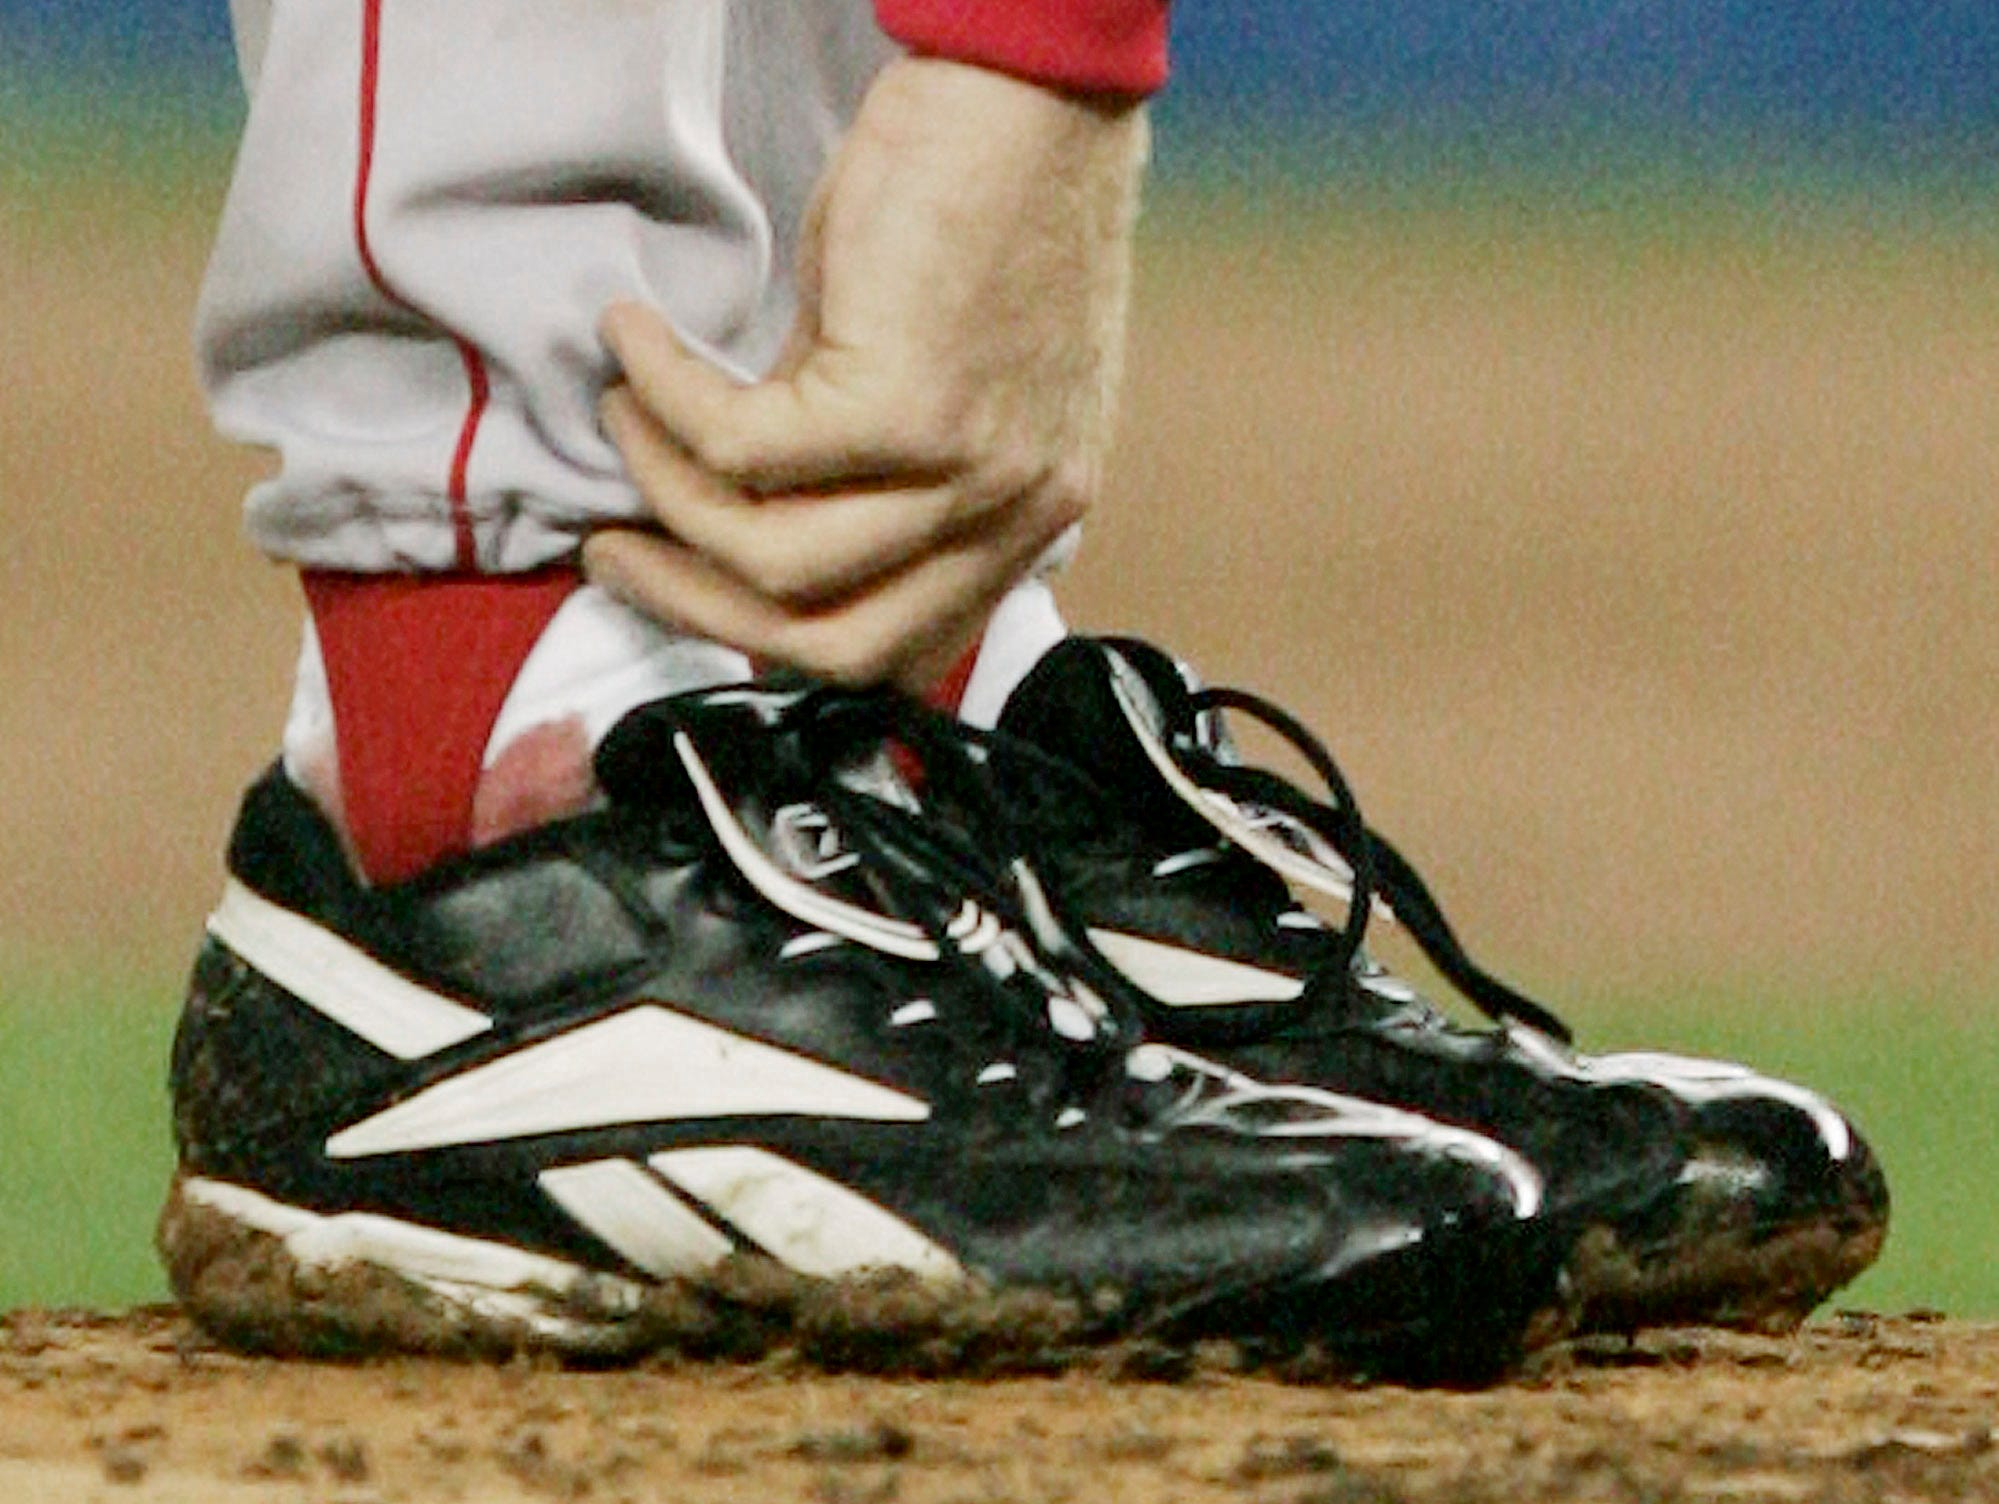 2004 ALCS Game 6: Red Sox starter Curt Schilling took the mound with an ankle injury against the Yankees, winning the game and forcing a Game 7.